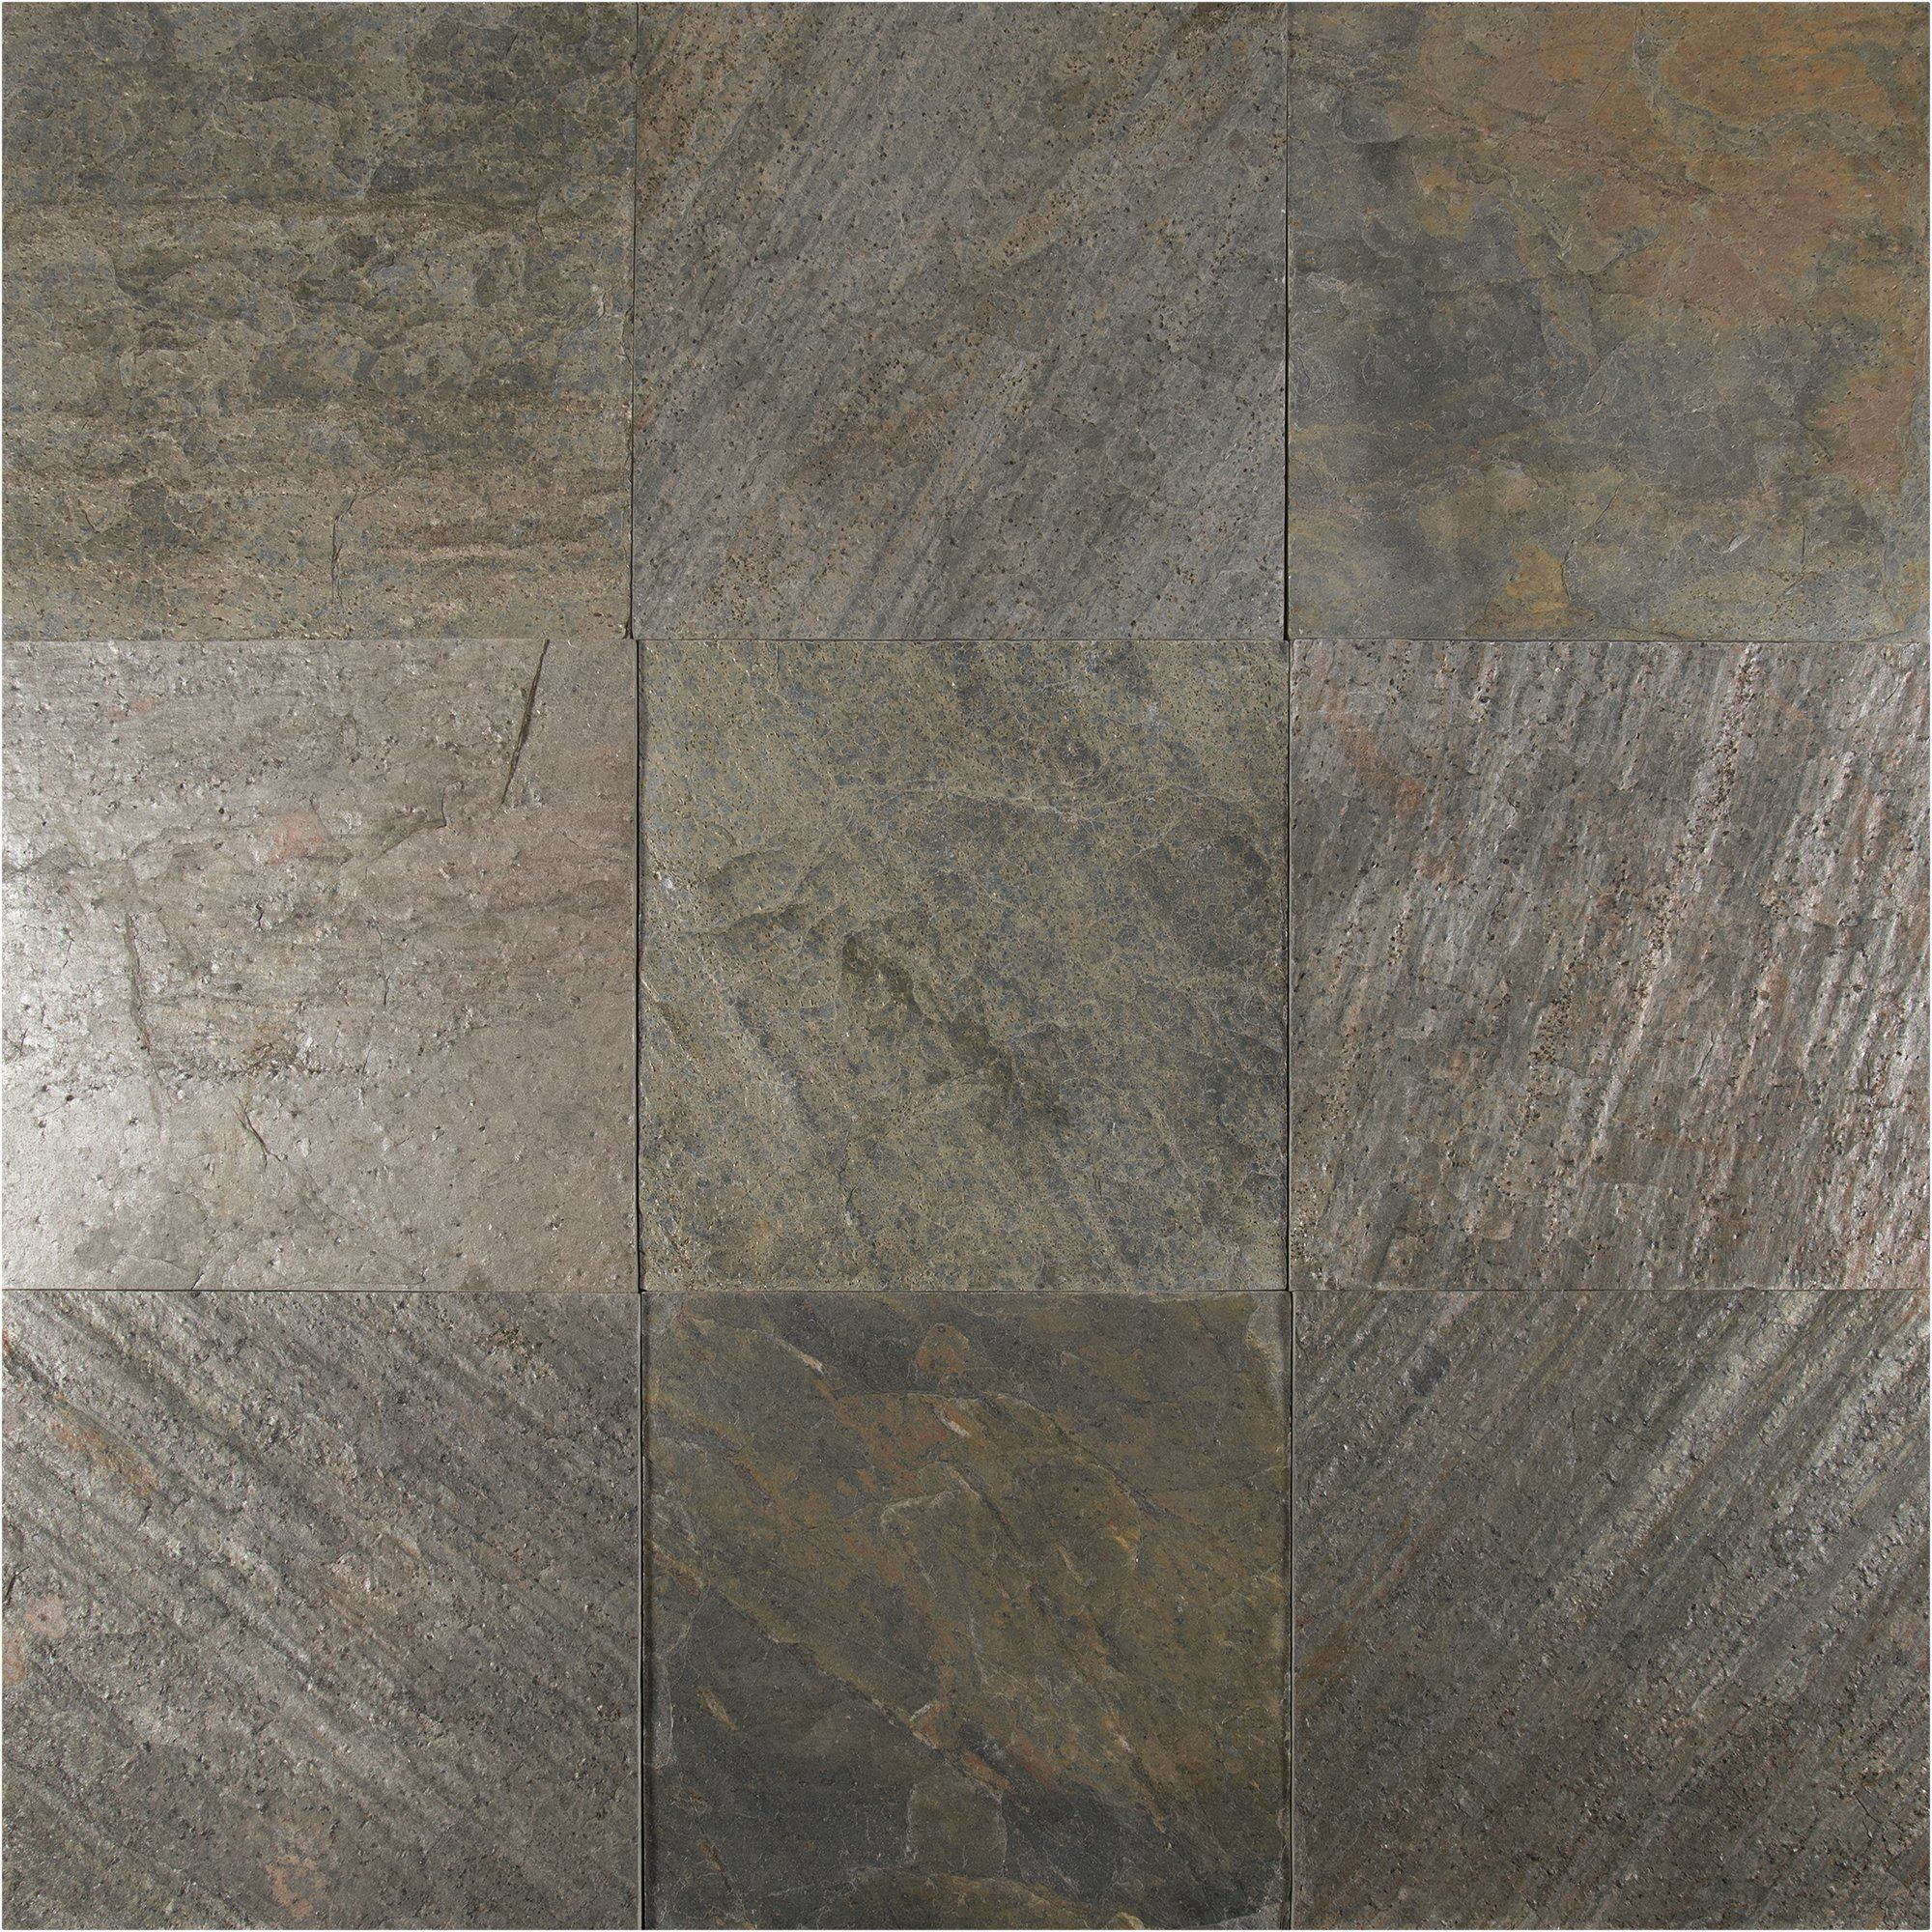 Ms international x natural stone field tile in ostrich grey